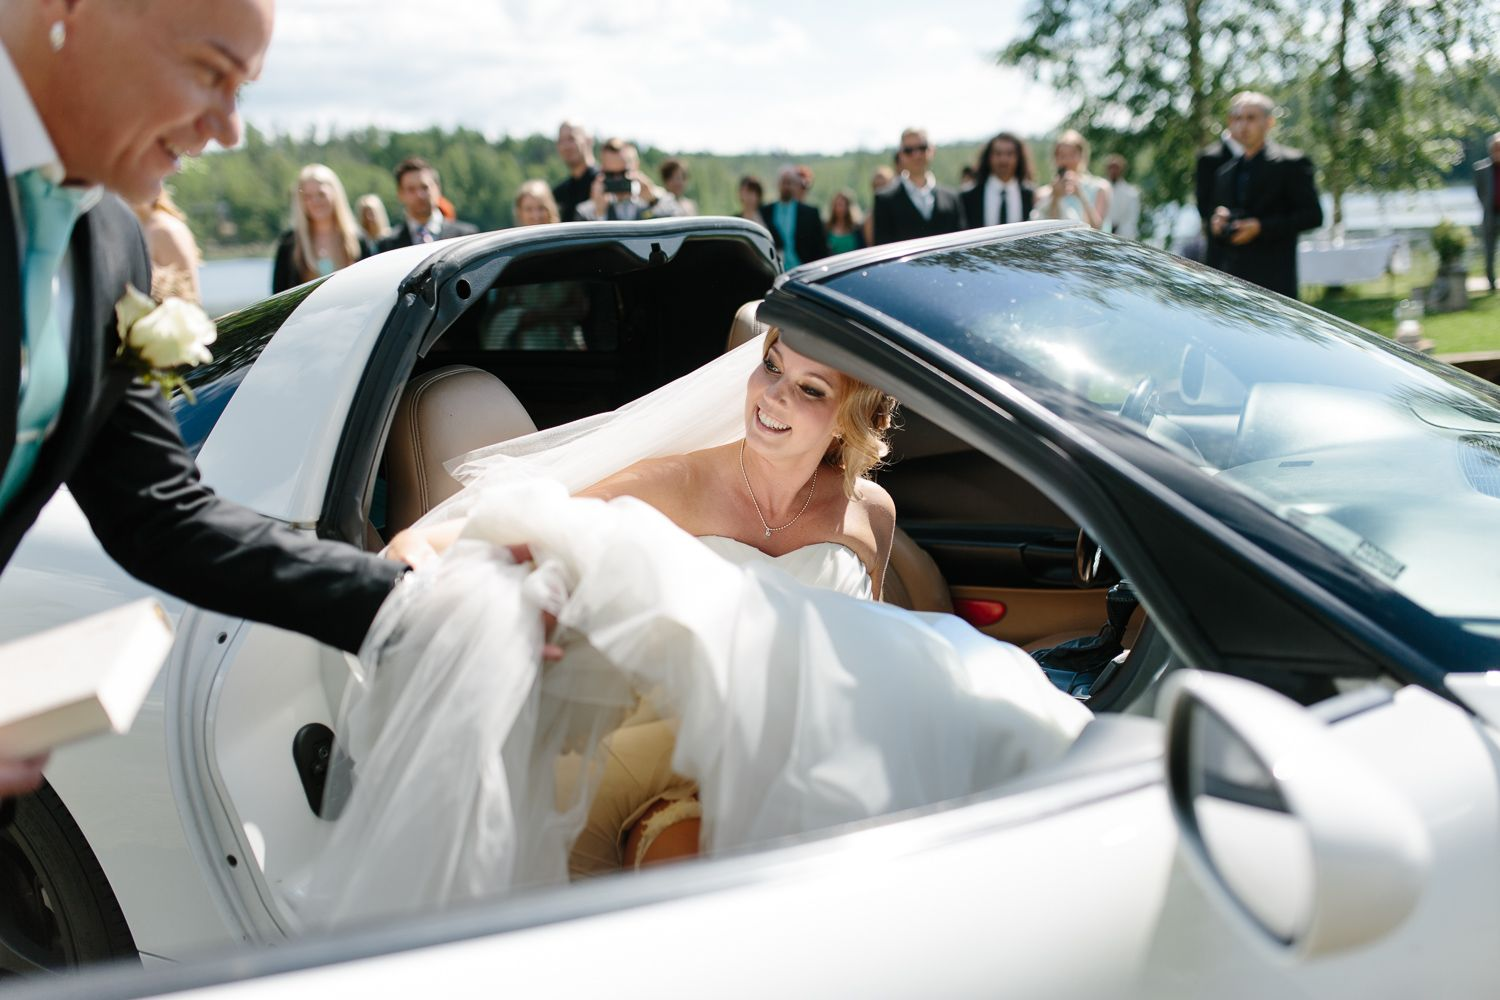 This wedding must have been the most relaxed I've ever photographed and as a couple Mirka & Matti managed to enjoy every moment! #wedding #photography